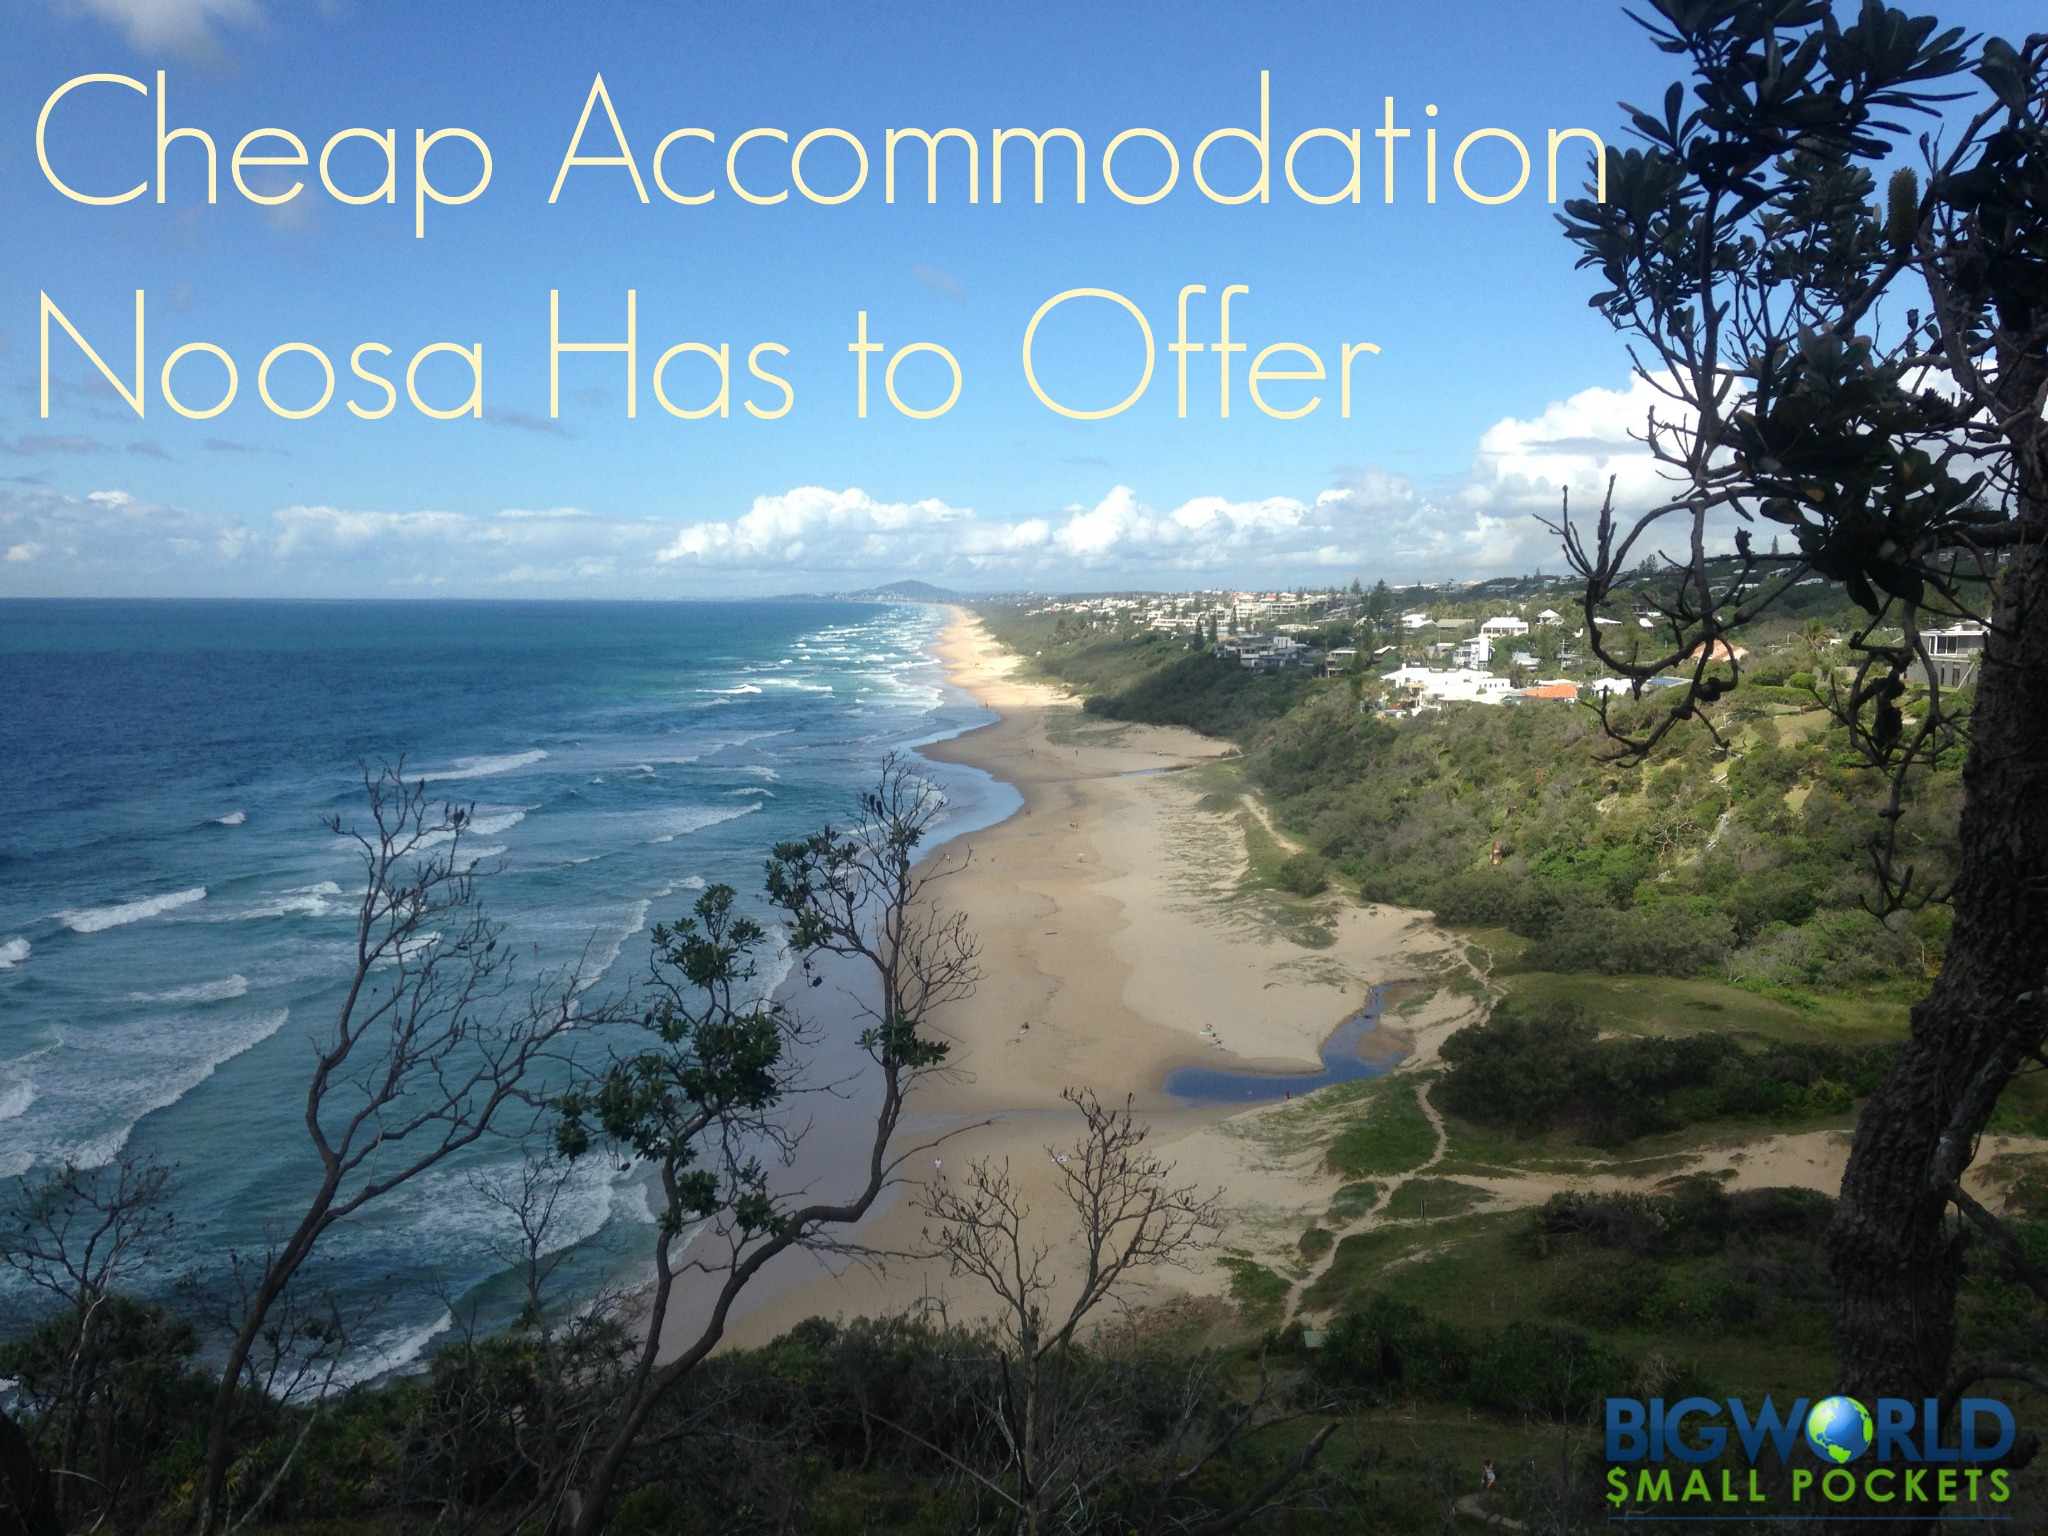 Cheap Accommodation Noosa Has to Offer